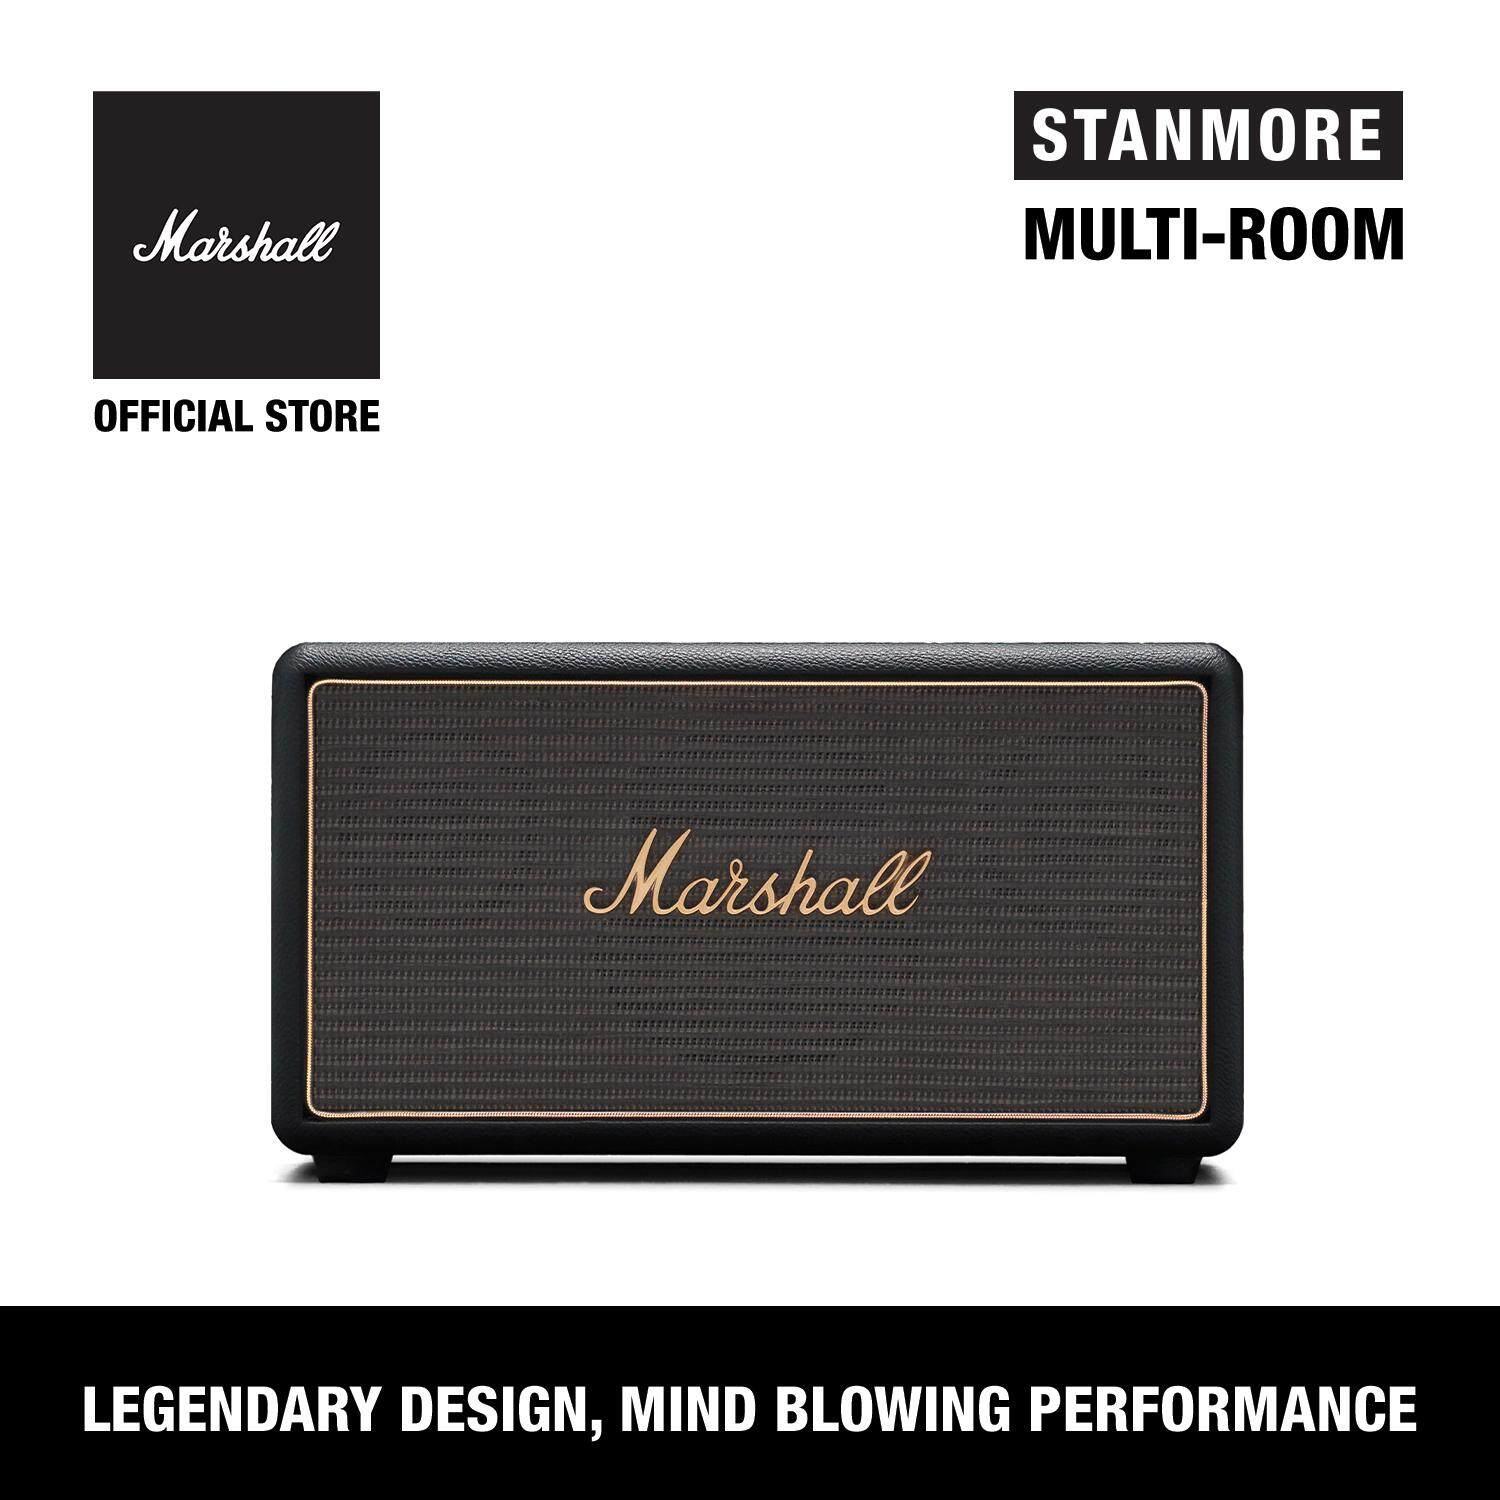 ลำโพงบลูทูธ Marshall Stanmore Multi-Room Black - Marshall Stanmore Multi-Room Speaker Black